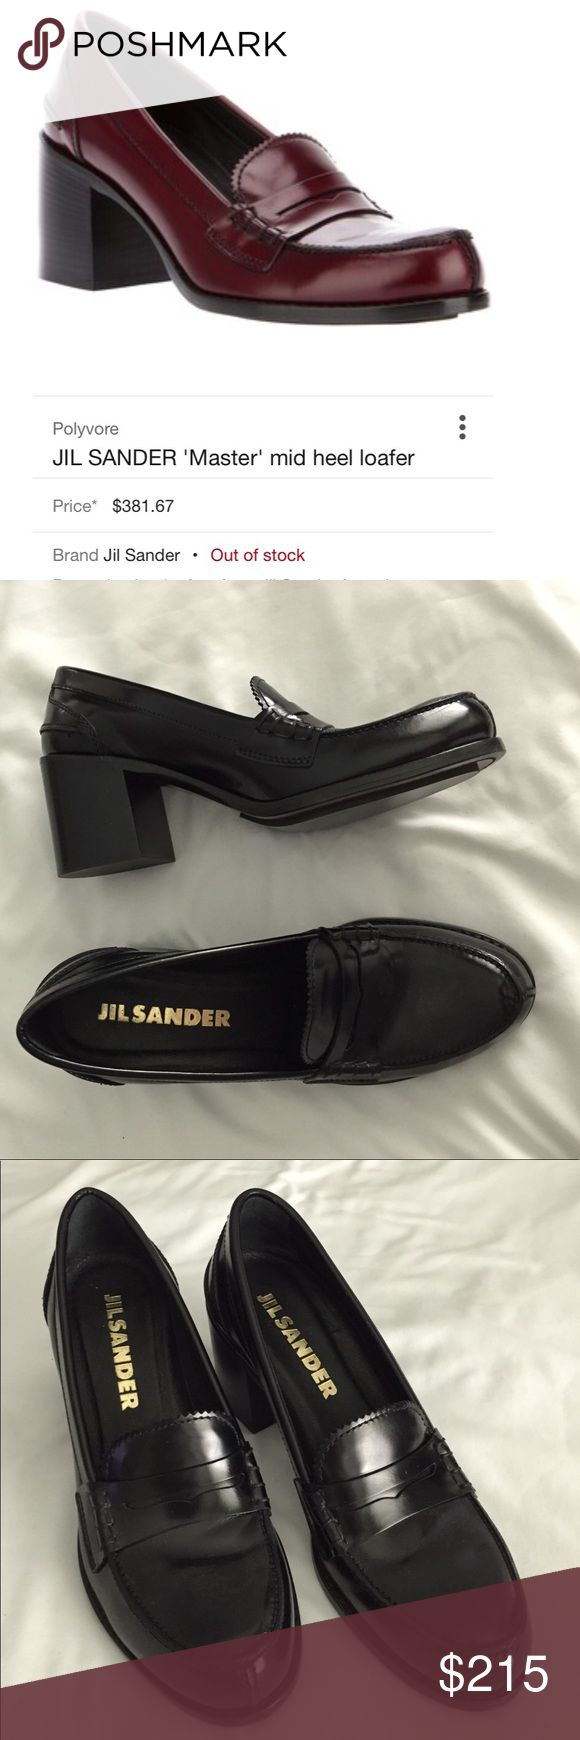 """Jil Sandler """"MASTER"""" black leather loafer NEW Gorgeous! Retail $400 - brand new. Purchased at Bloomingdales and fell in love but they are just too small. Size 37 = 7. Jil Sander Shoes Heels"""